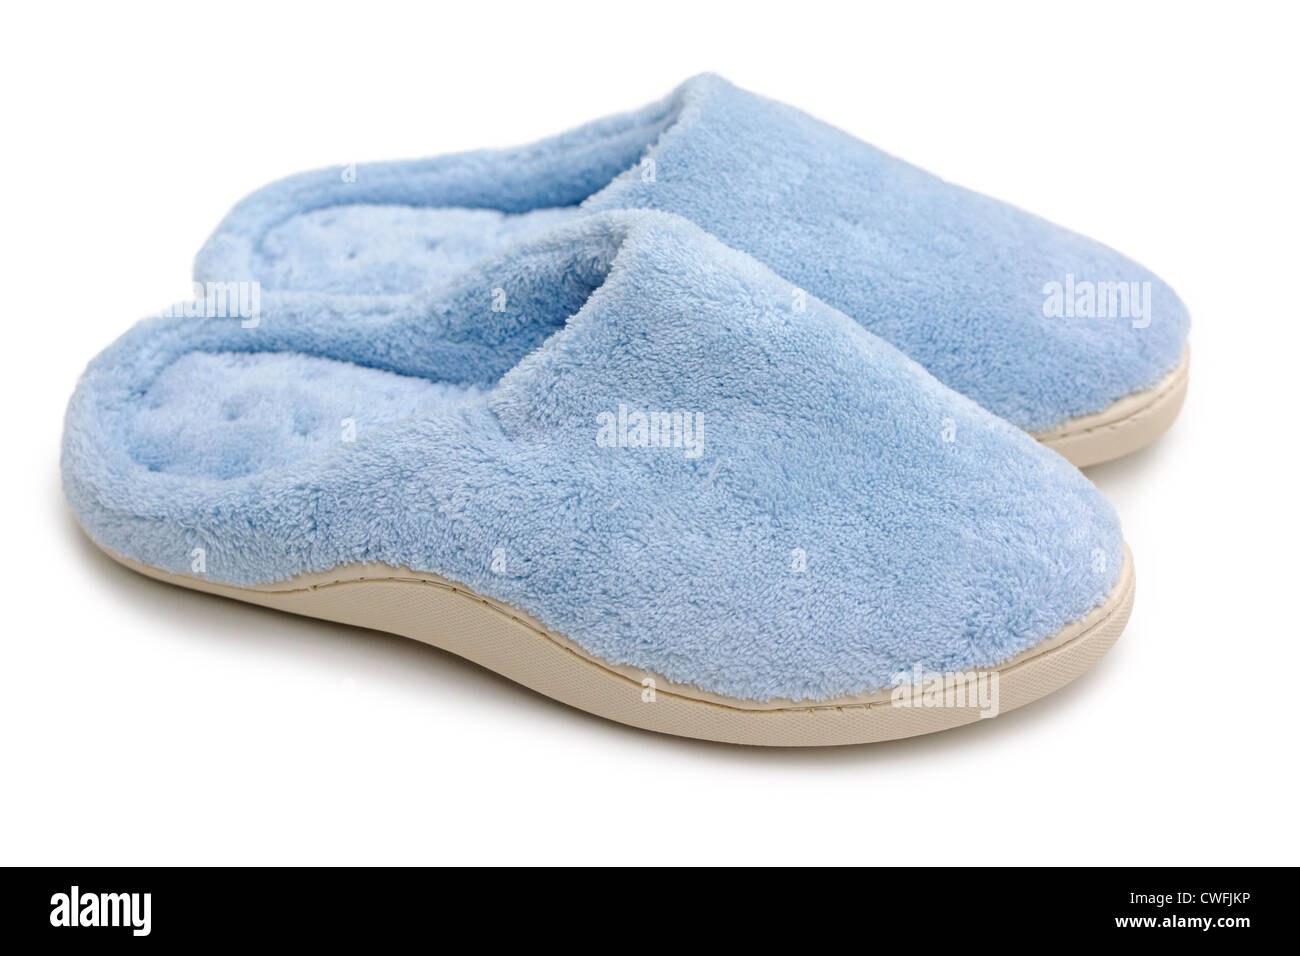 Slippers - Stock Image